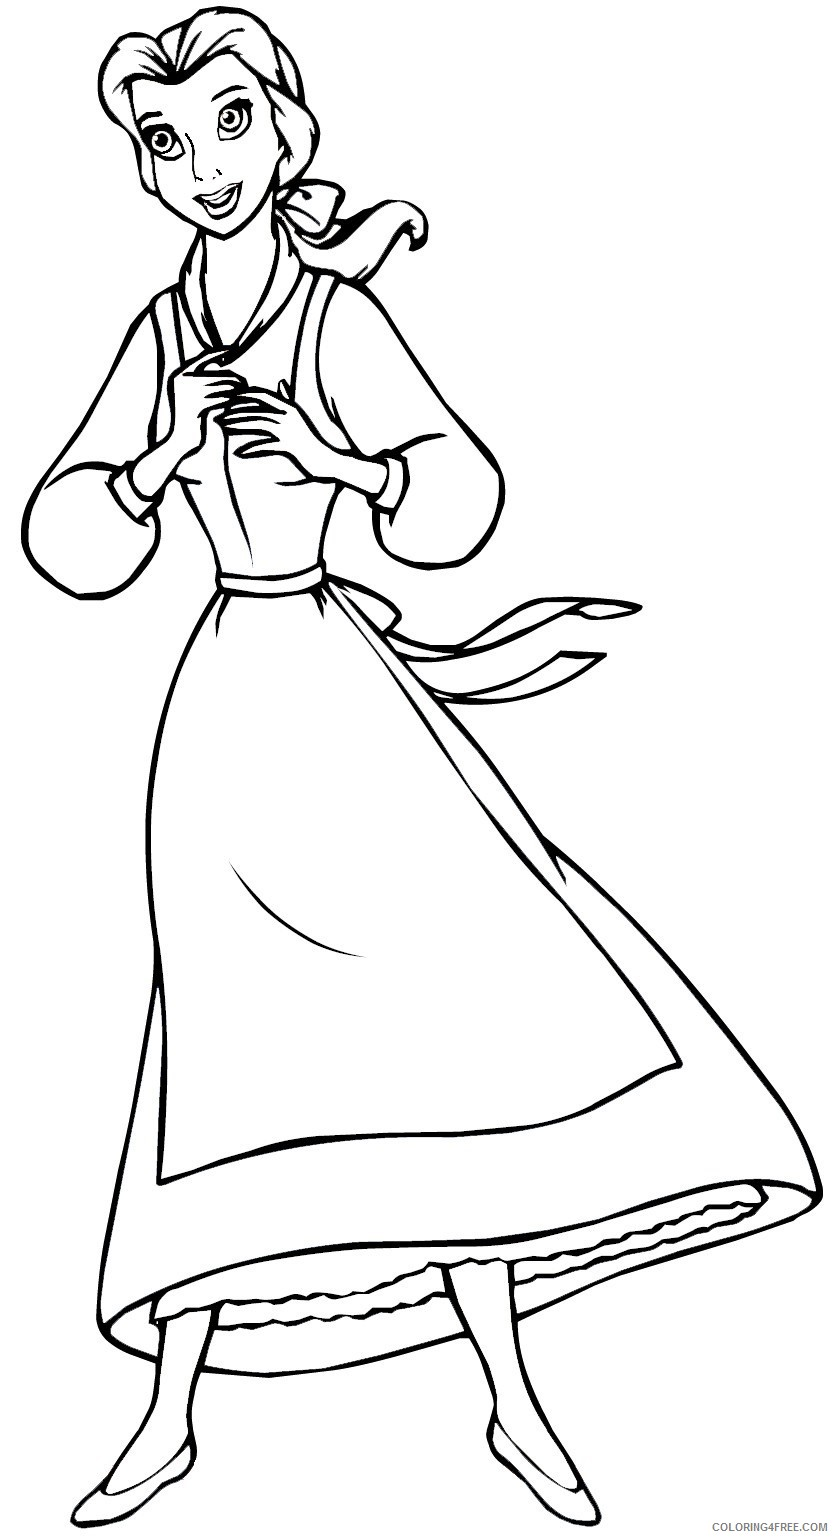 belle coloring pages free to print Coloring4free